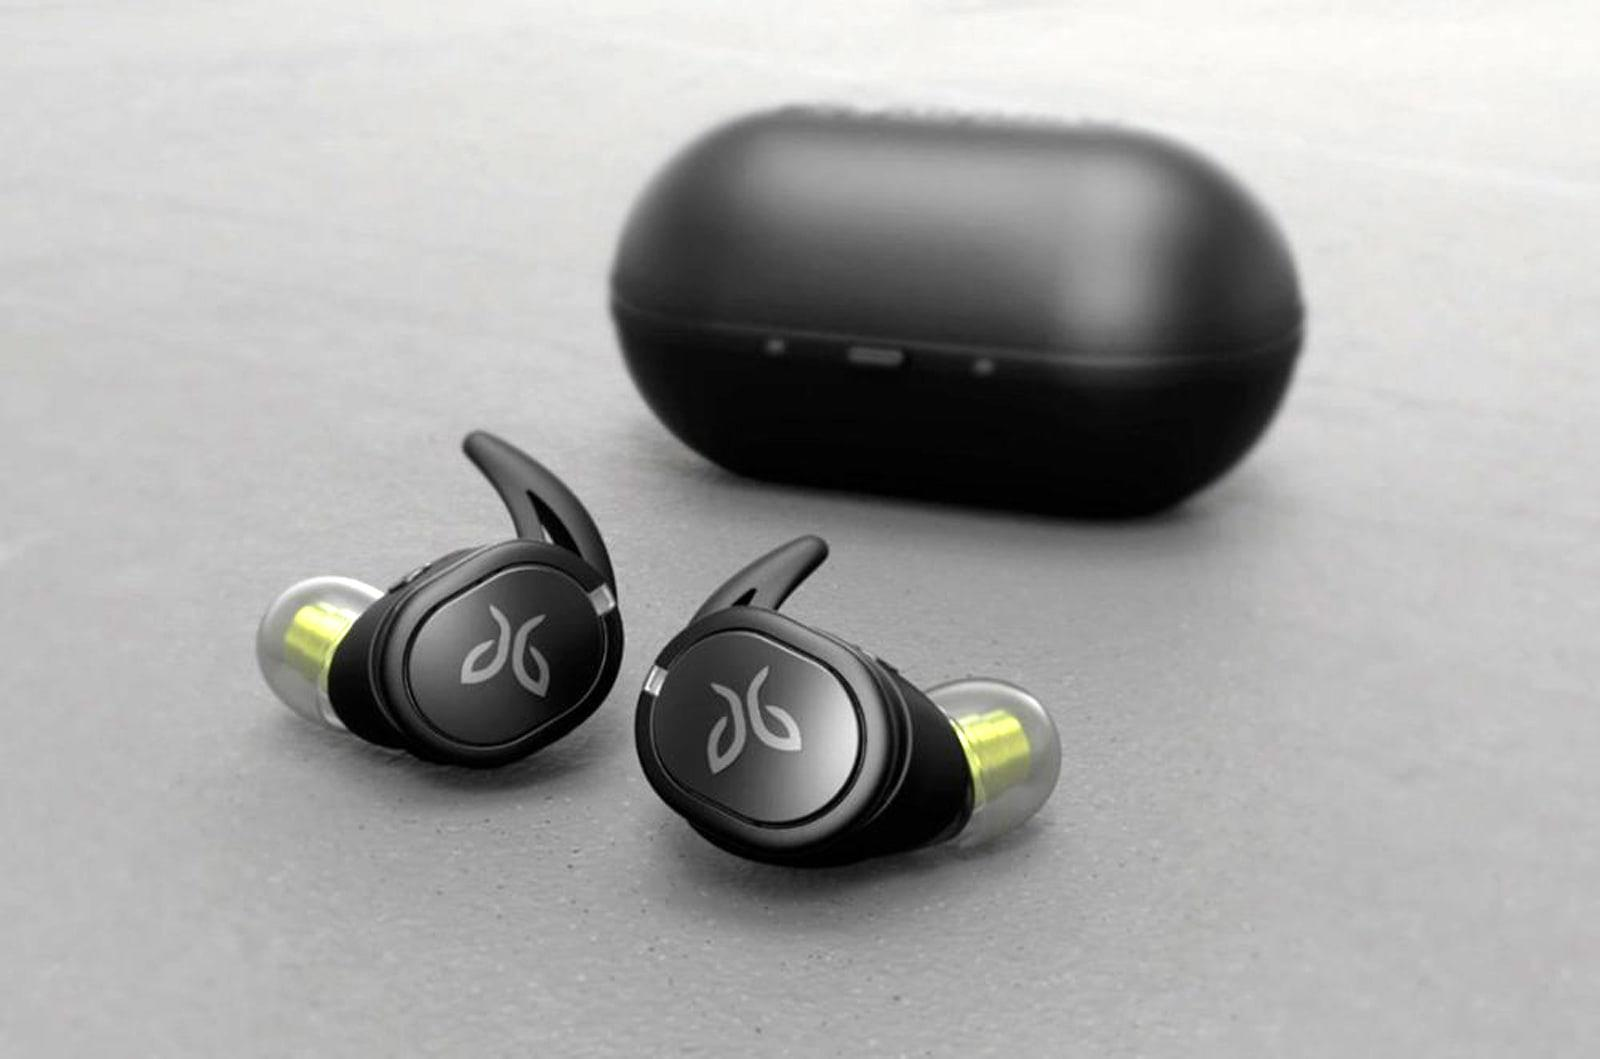 Jaybird S Run Xt True Wireless Earbuds Are On Sale For 50 At Best Buy Engadget